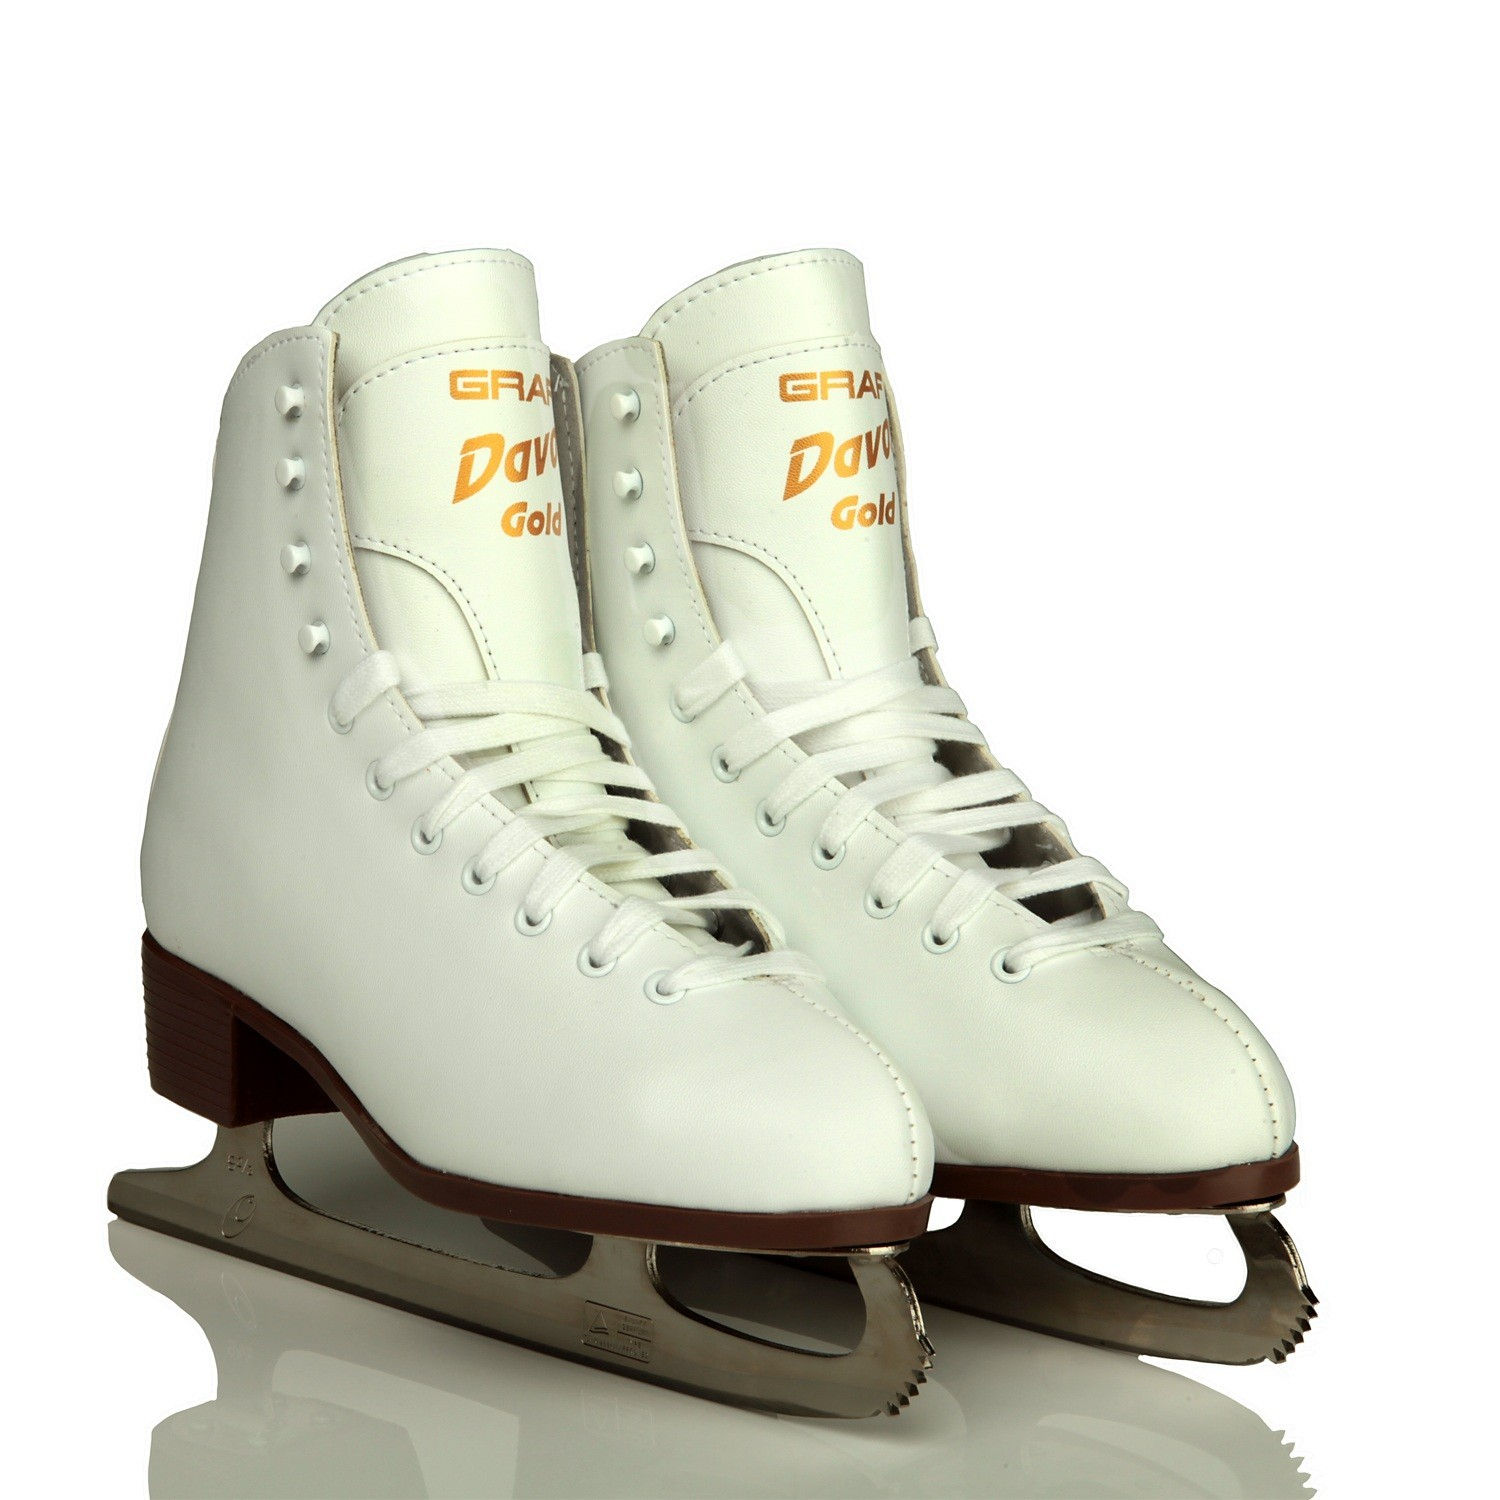 GRAF Davos Gold Girls Figure Skates